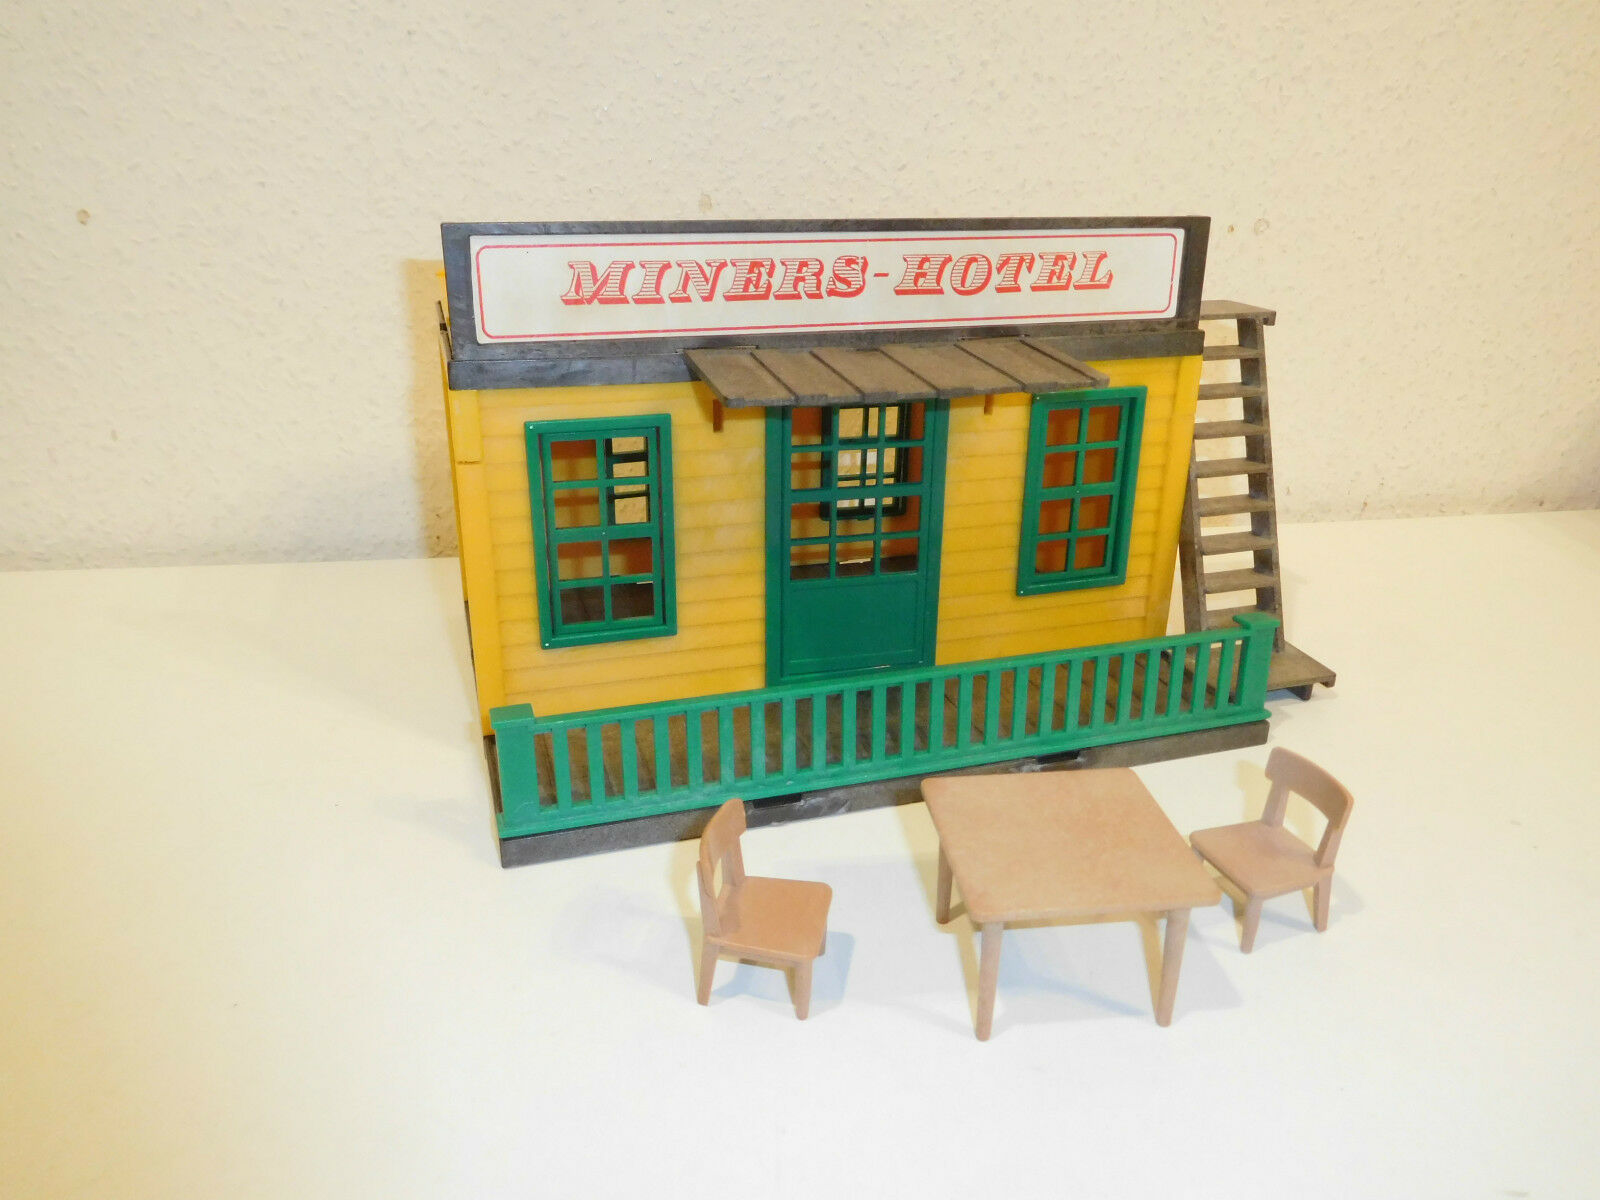 Playmobil western 3426 miner's miner's miner's hotel a1741d